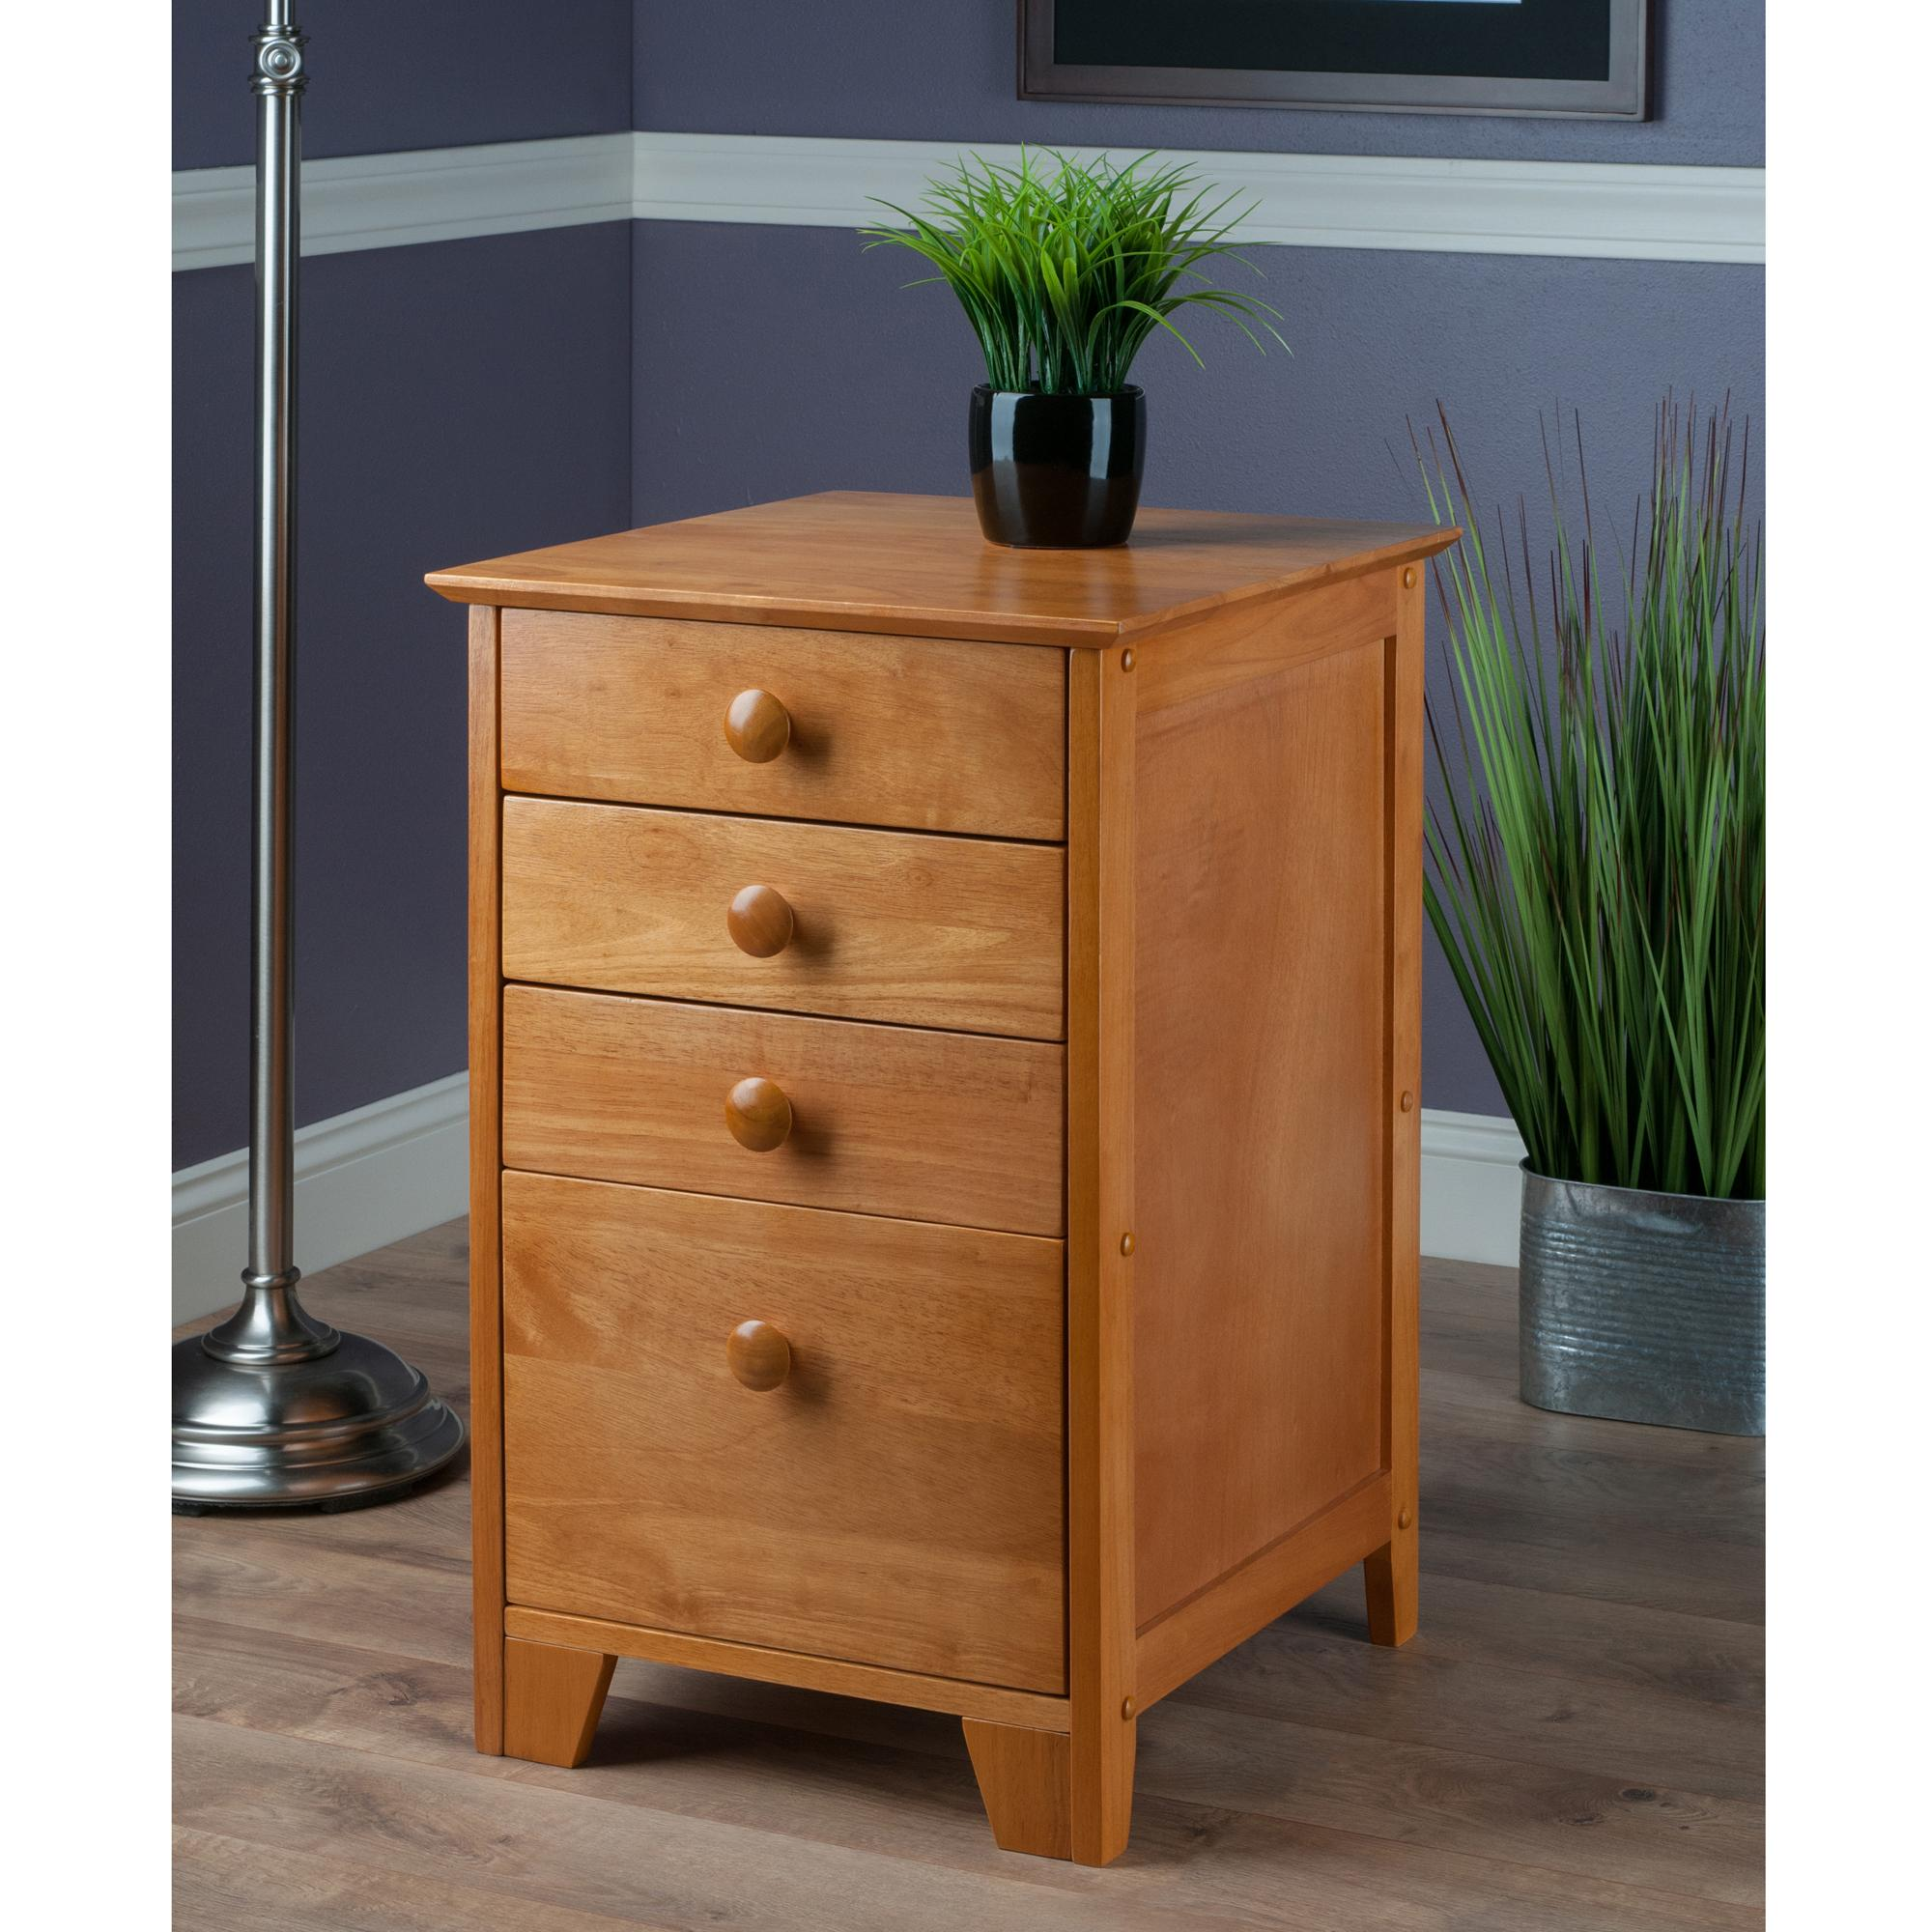 b drawers drawer file riverside coventry item lateral two tone furniture cabinet products number